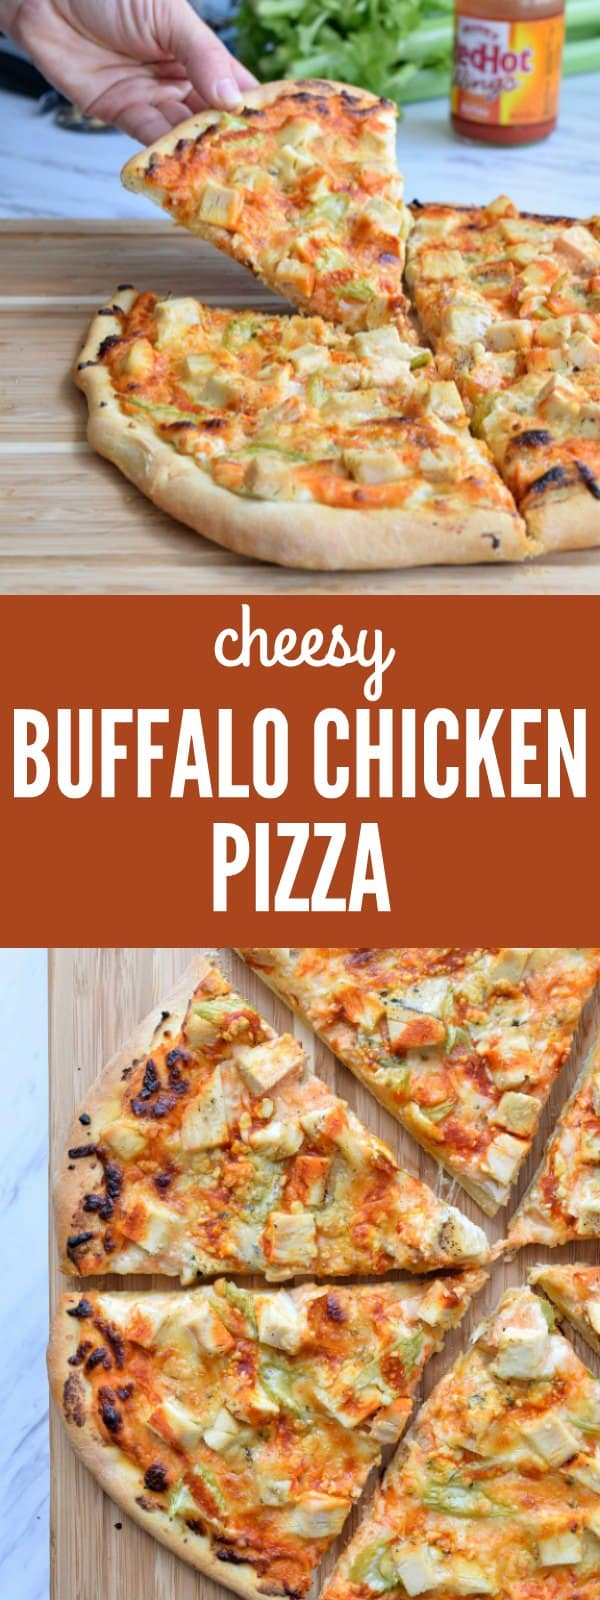 Cheesy Buffalo Chicken Pizza